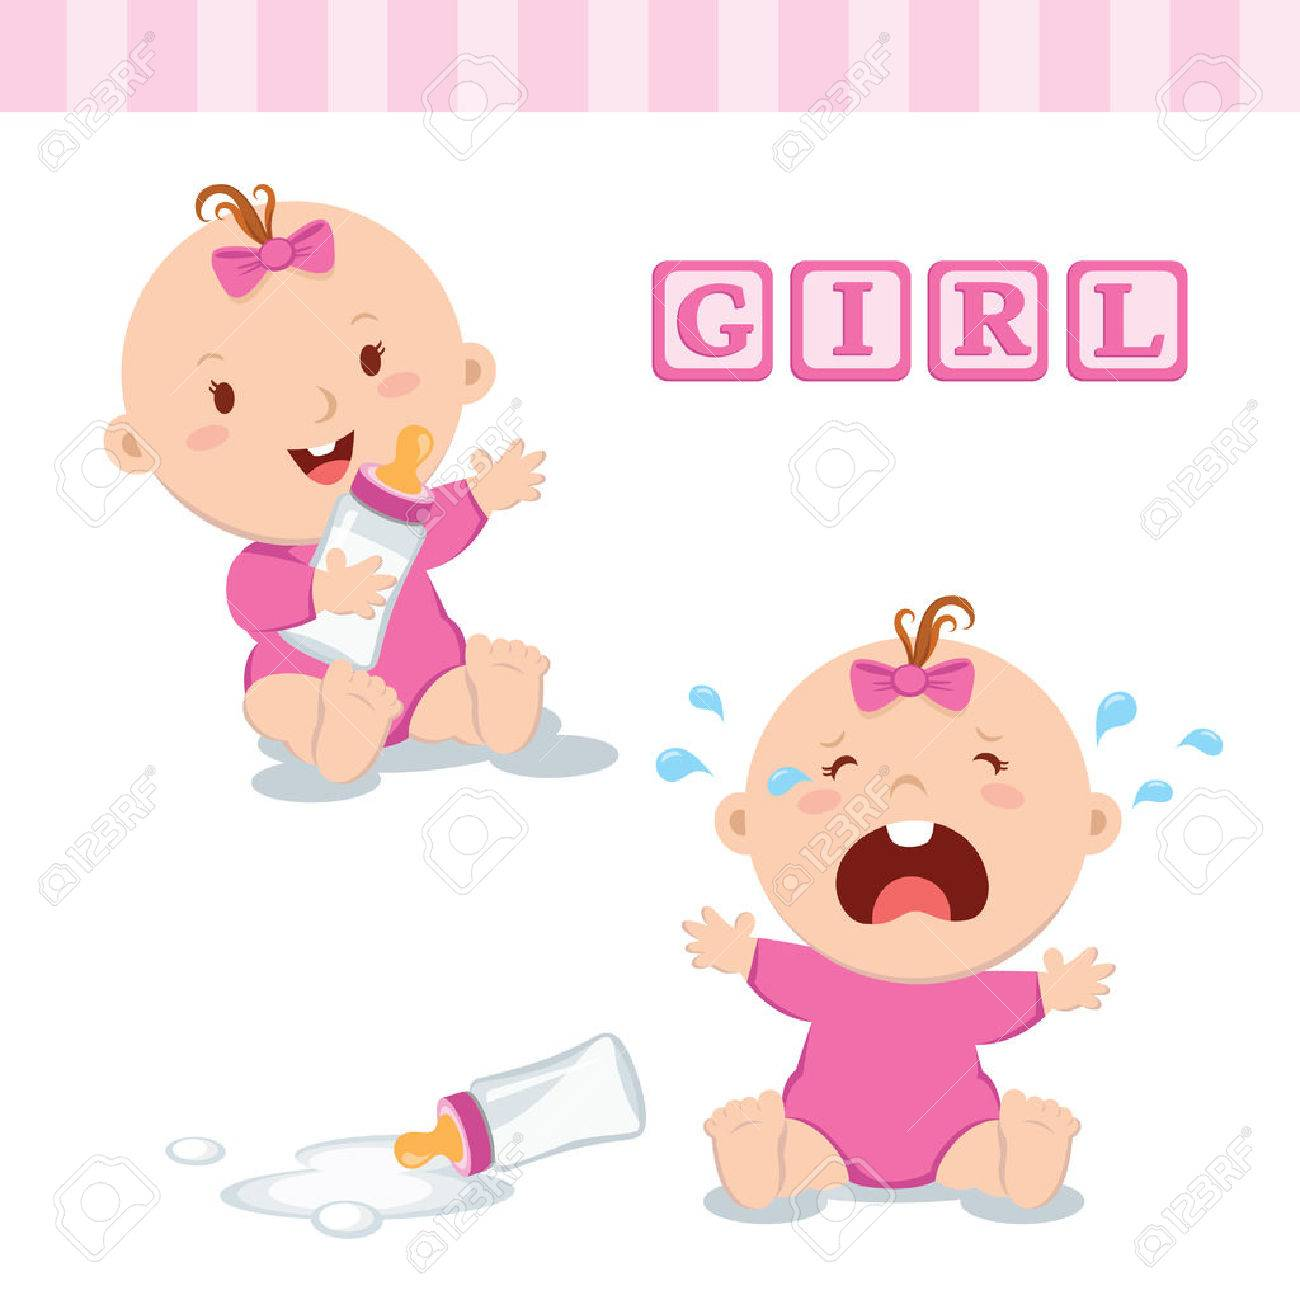 Cute baby girl with milk bottle. Vector illustration of a baby girl holding milk bottle and crying with bottle milk. - 62399872